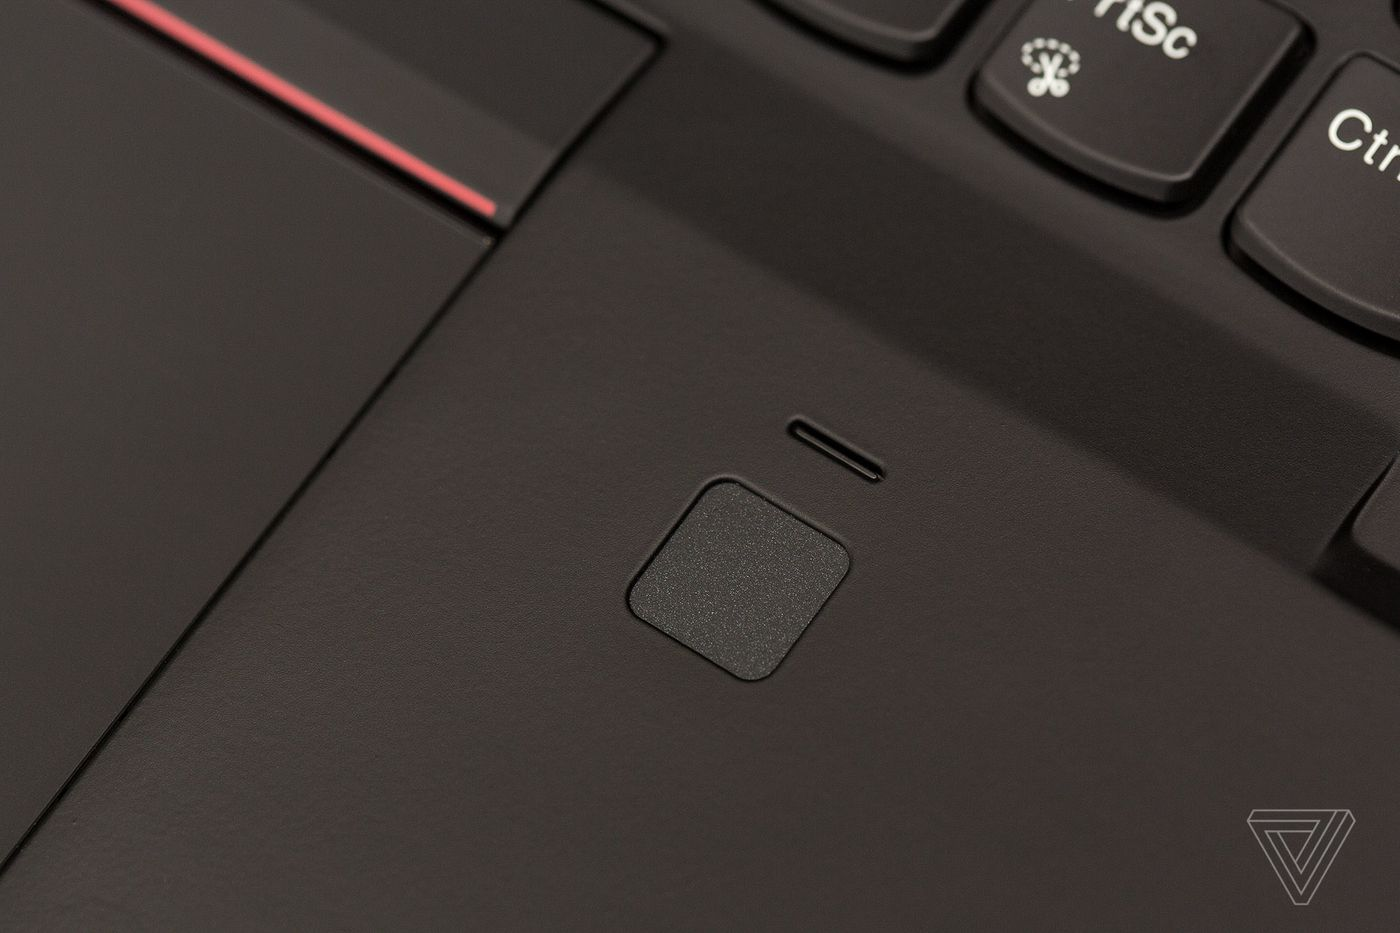 Lenovo ThinkPad X1 Carbon (2018) review: business in the